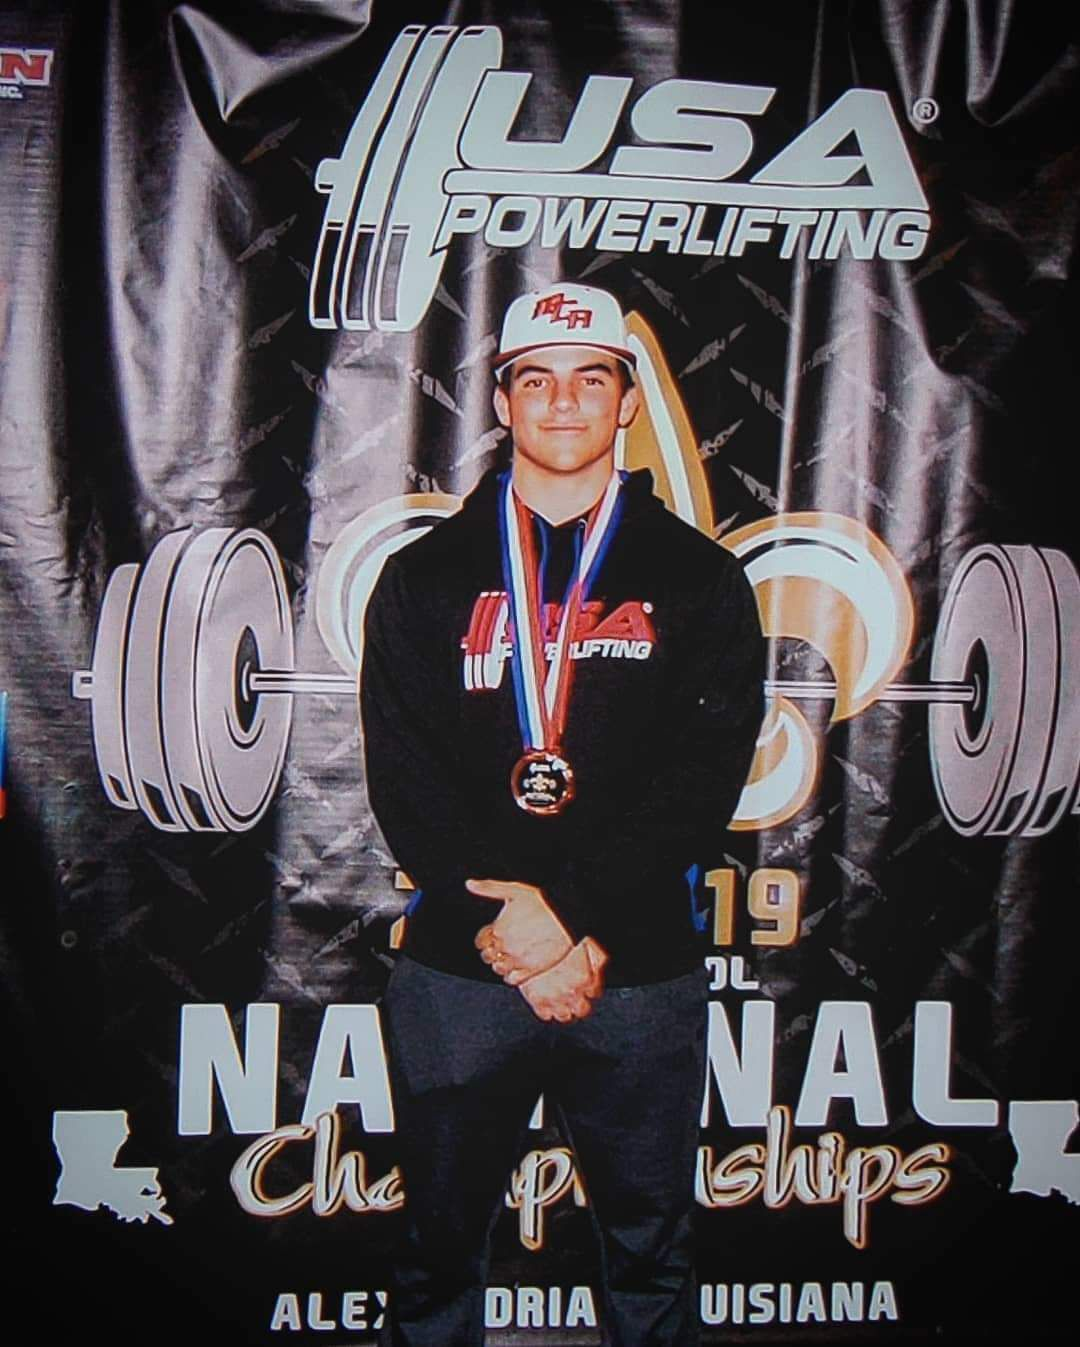 Witkoski claims third place at powerlifting championships